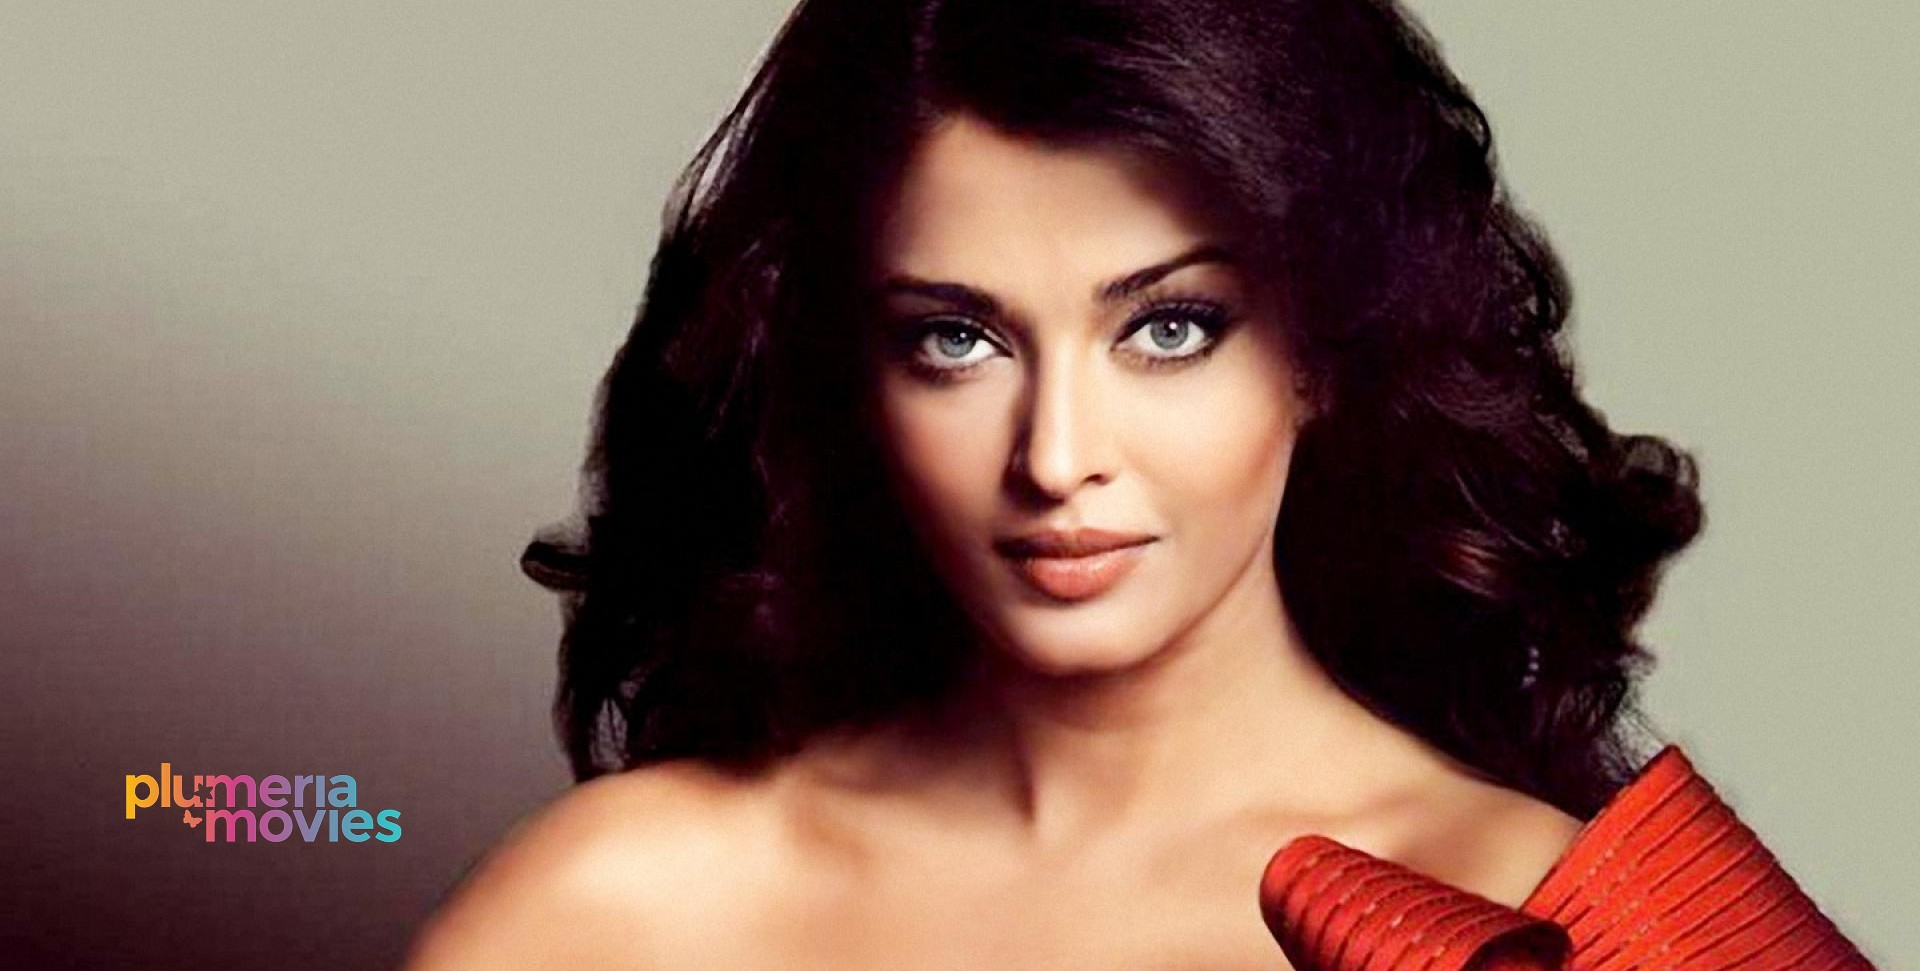 Hot Bollywood Celeb: The Most Beautiful South Indian Actress